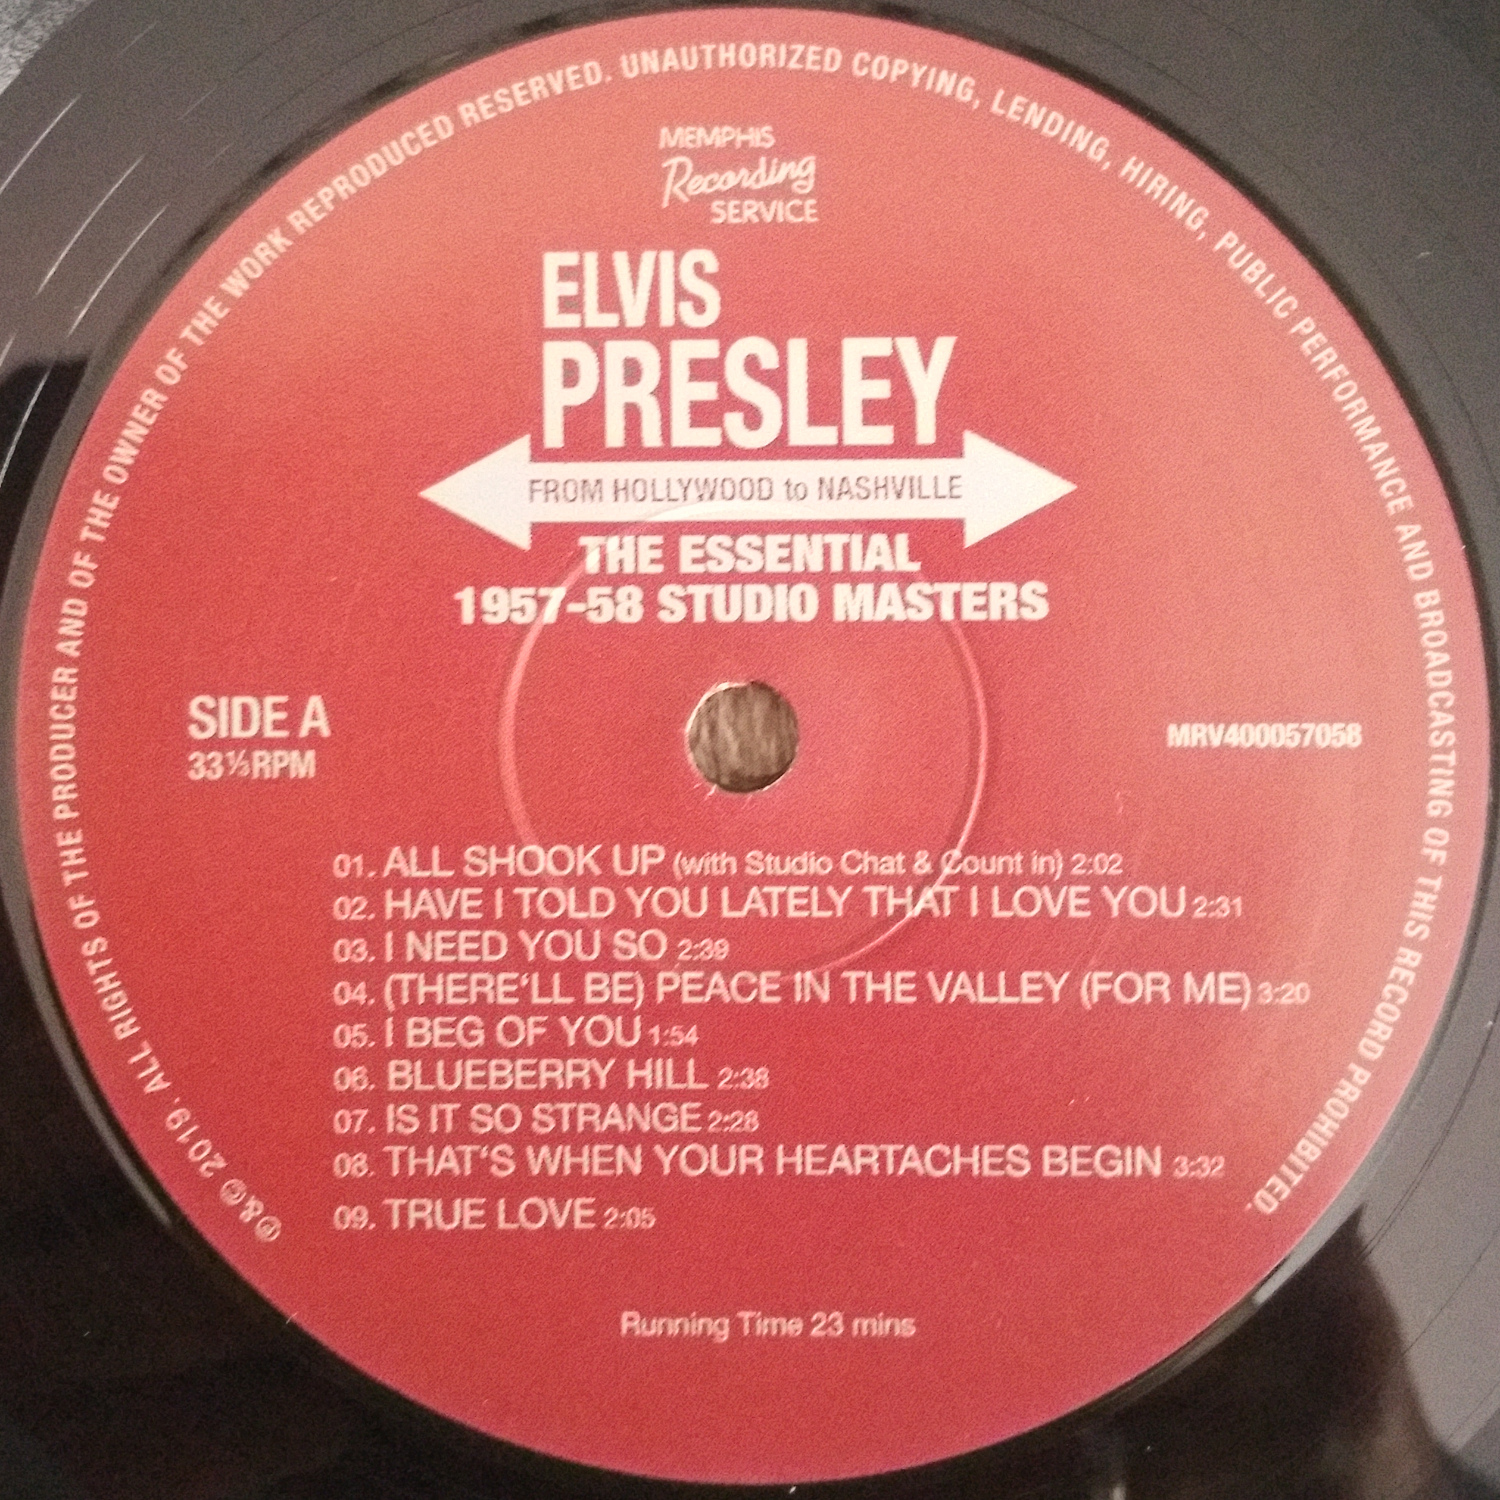 FROM HOLLYWOOD TO NASHVILLE (The Essential 1957-58 Studio Masters) 6exjty